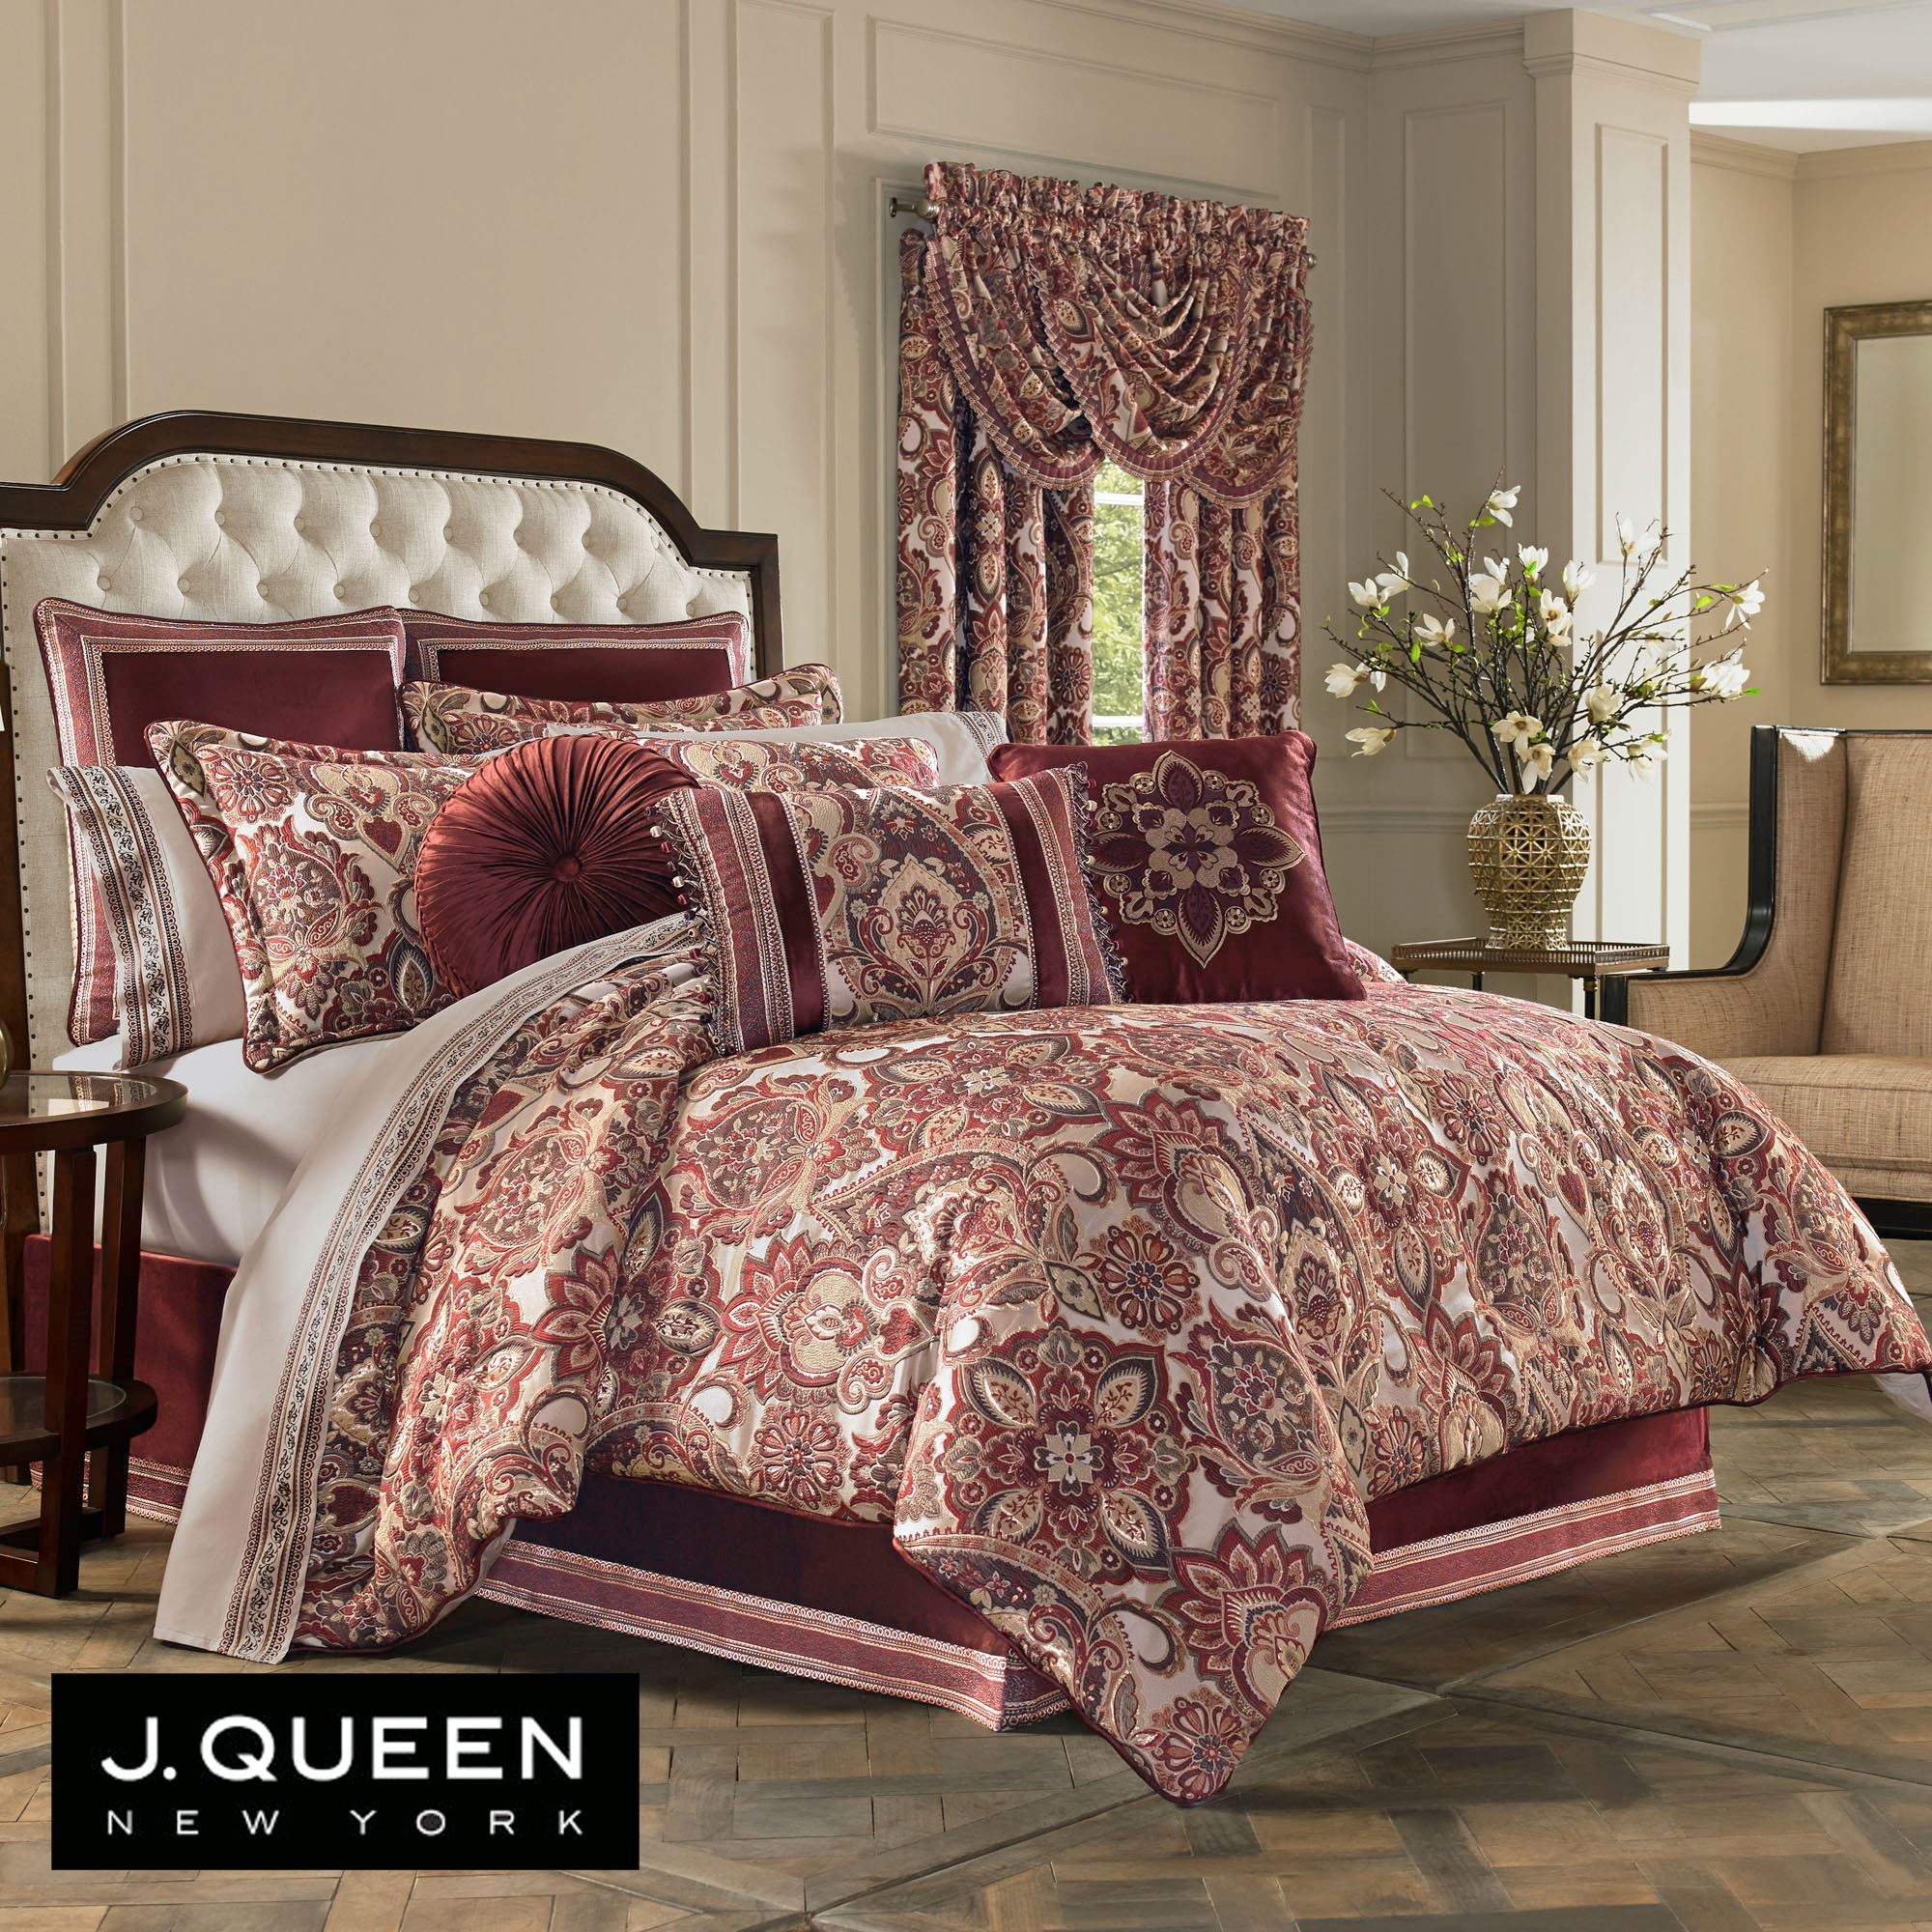 Rosewood Damask Medallion Burgundy Comforter Bedding By J